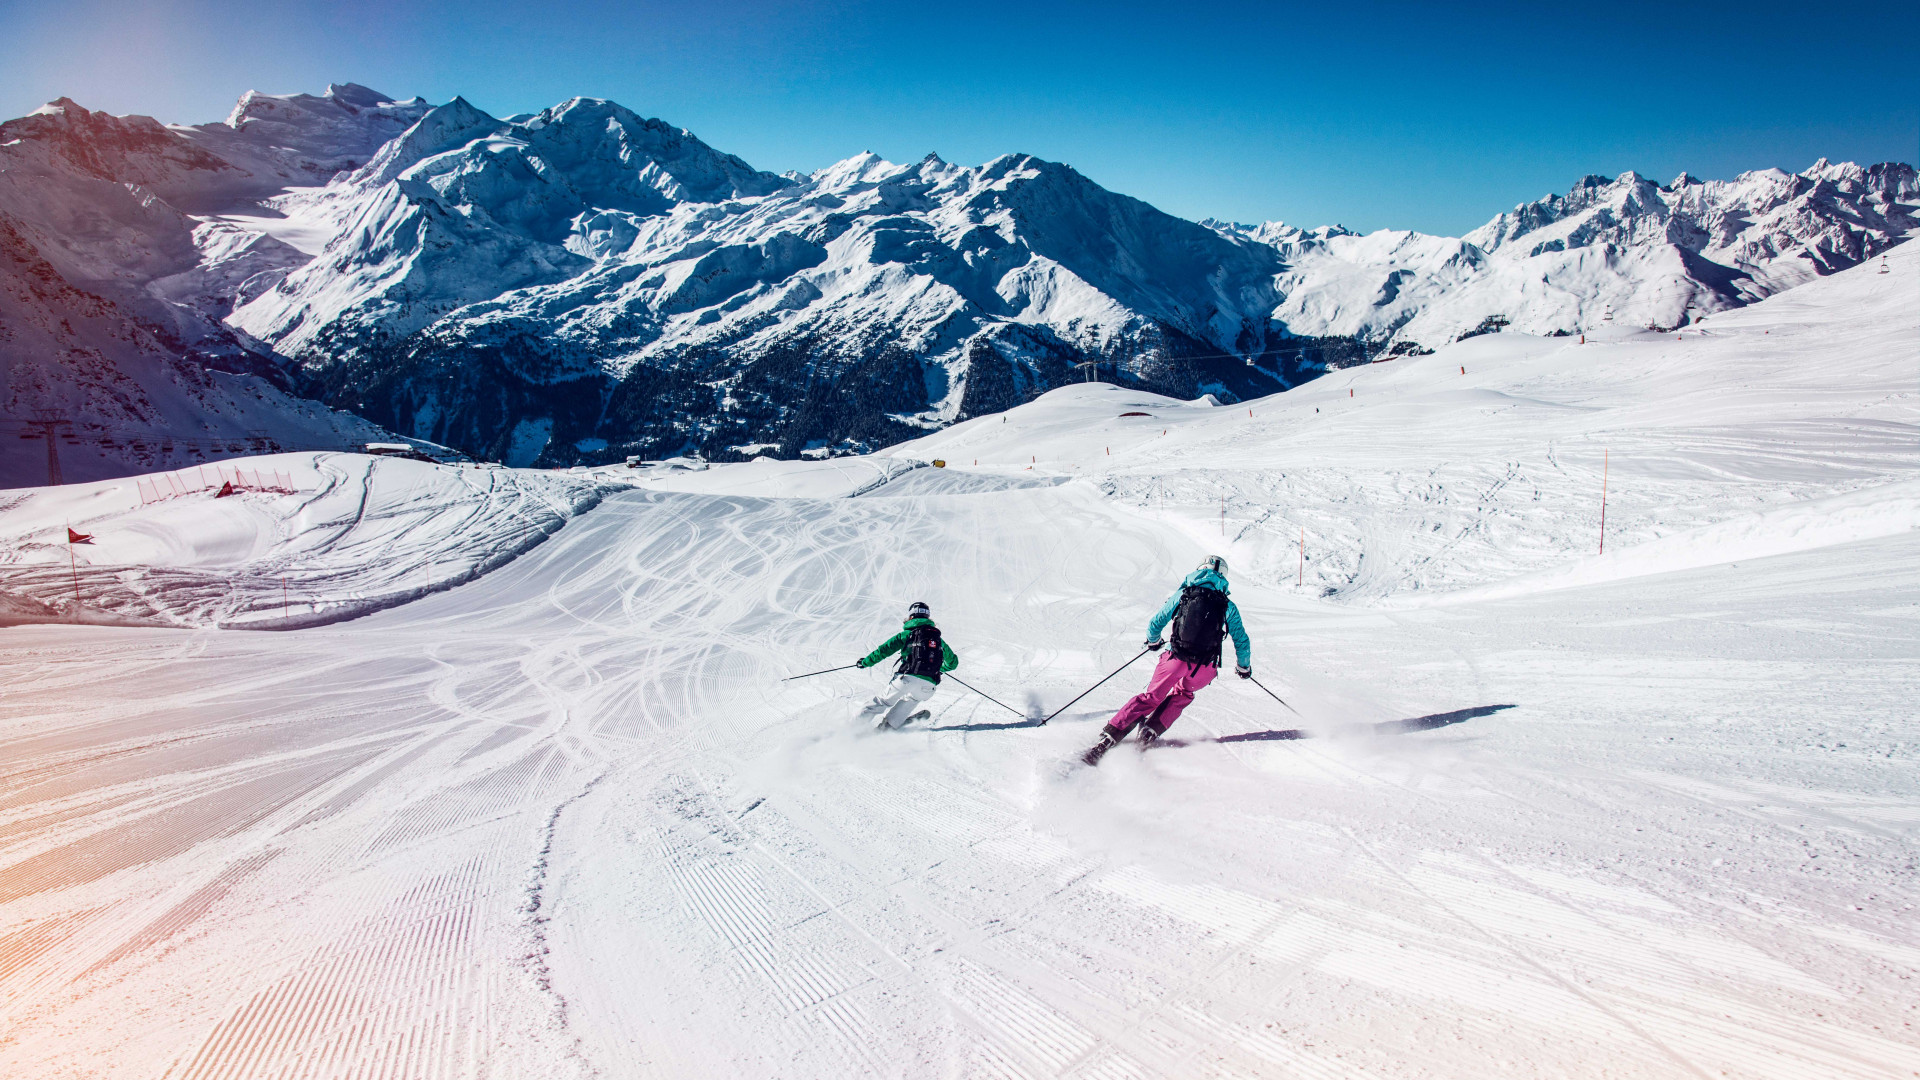 Winter in Valais: skiing in Verbier